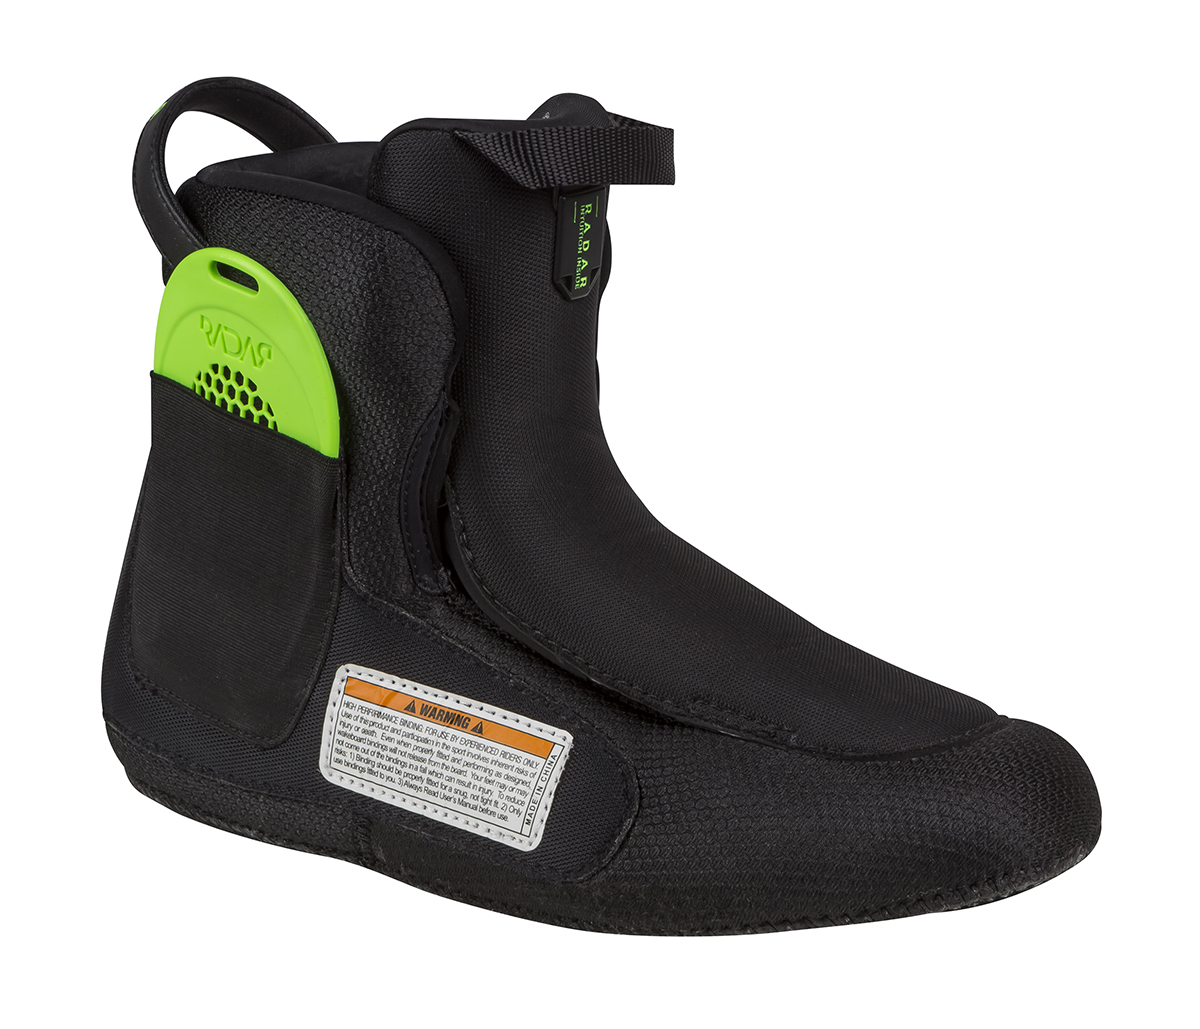 VAPOR BOOT LINER W/INSOLE - RIGHT RADAR 2017